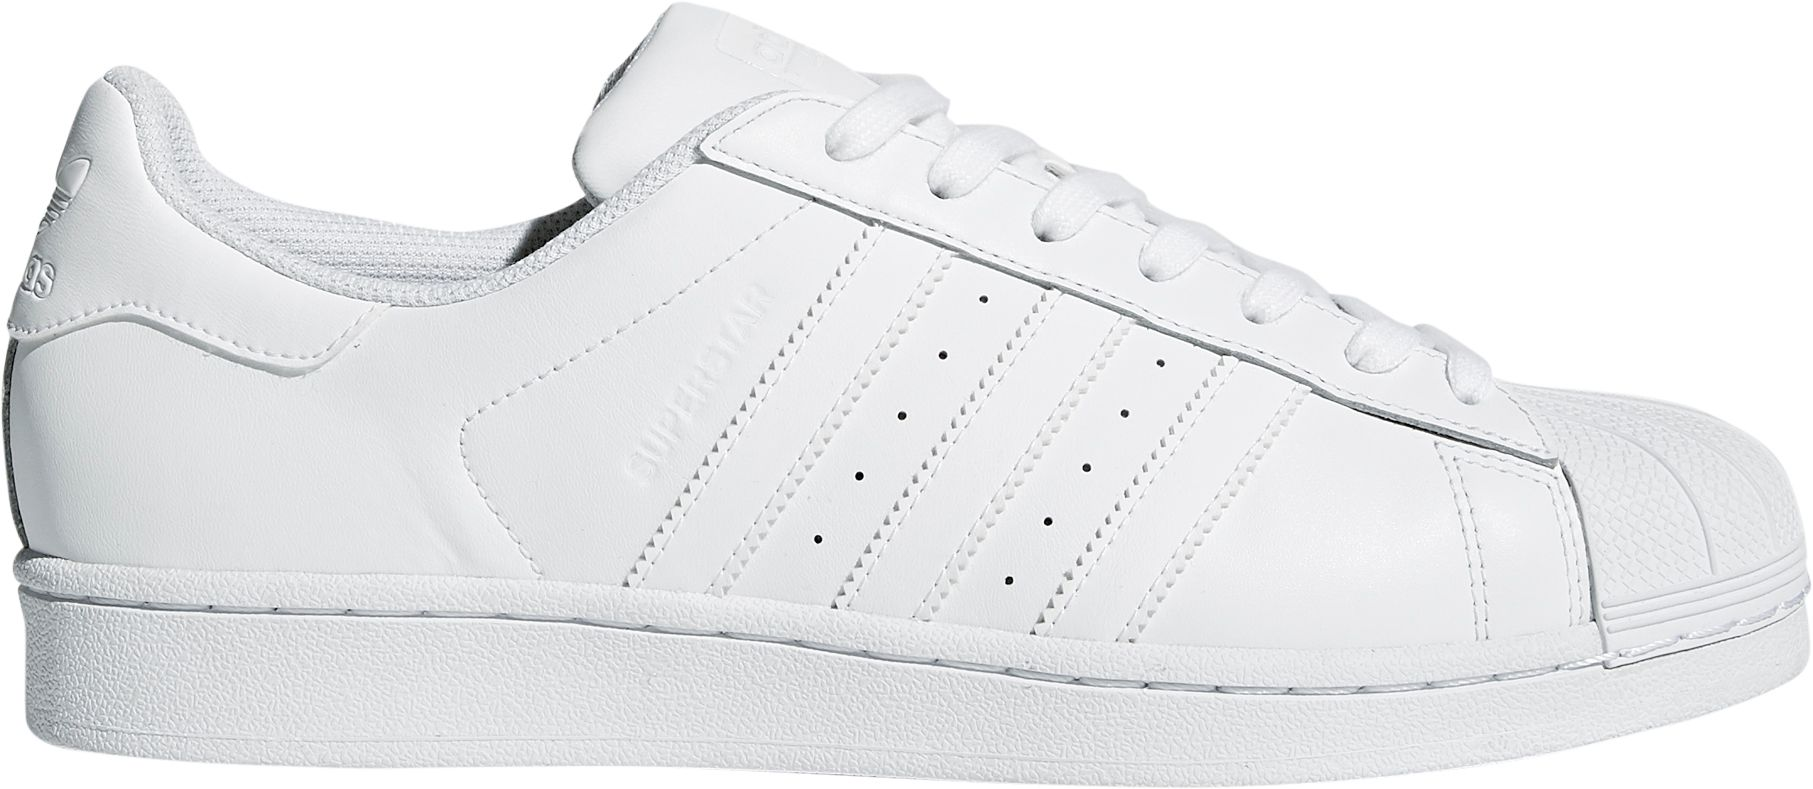 CM8002 Cheap Adidas Consortium x Kasina Superstar Boost